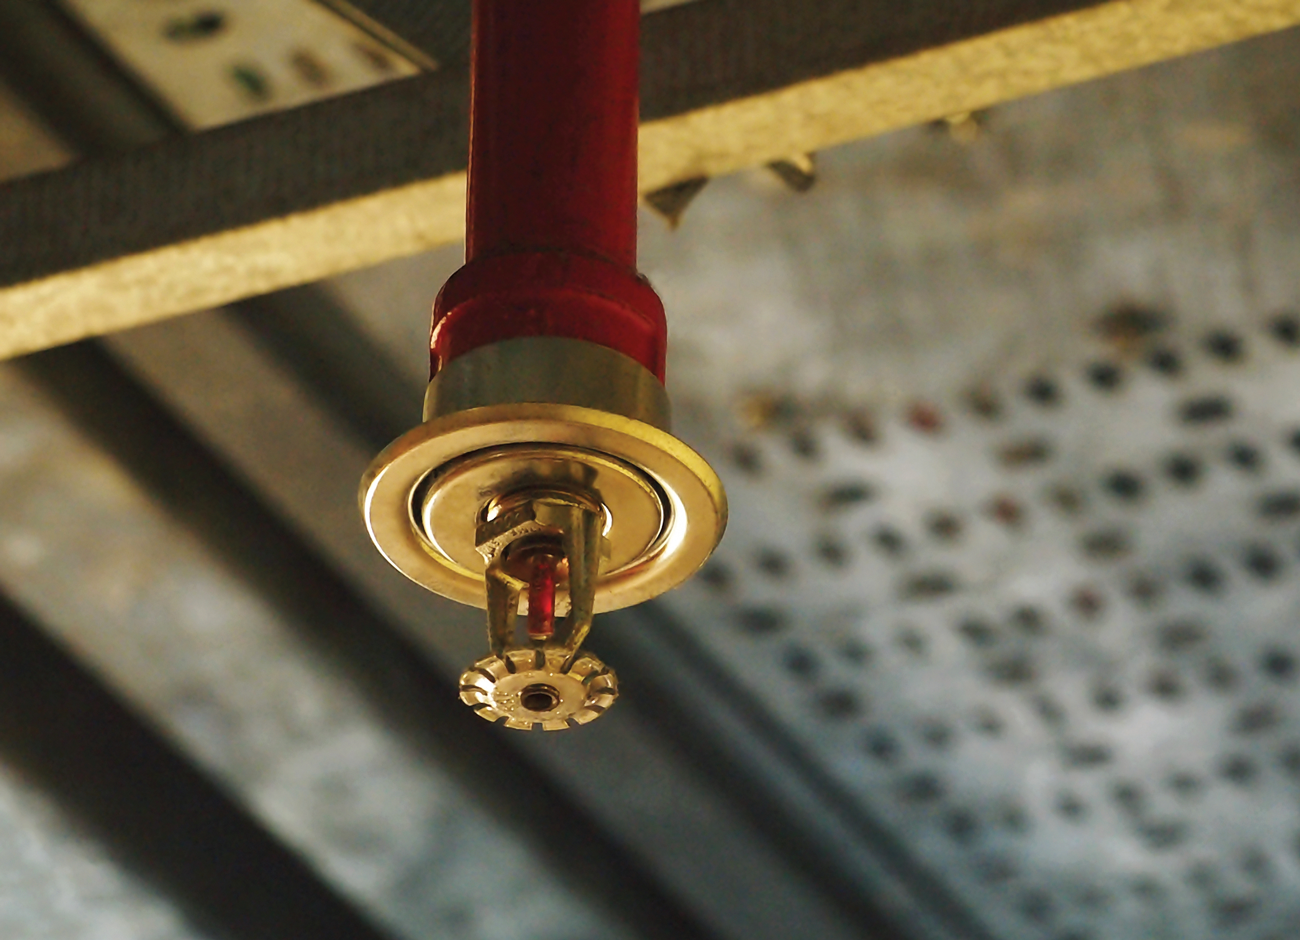 The constant presence of water and oxygen in contact with metal pipes and fittings make wet sprinkler systems vulnerable to high levels of corrosion.